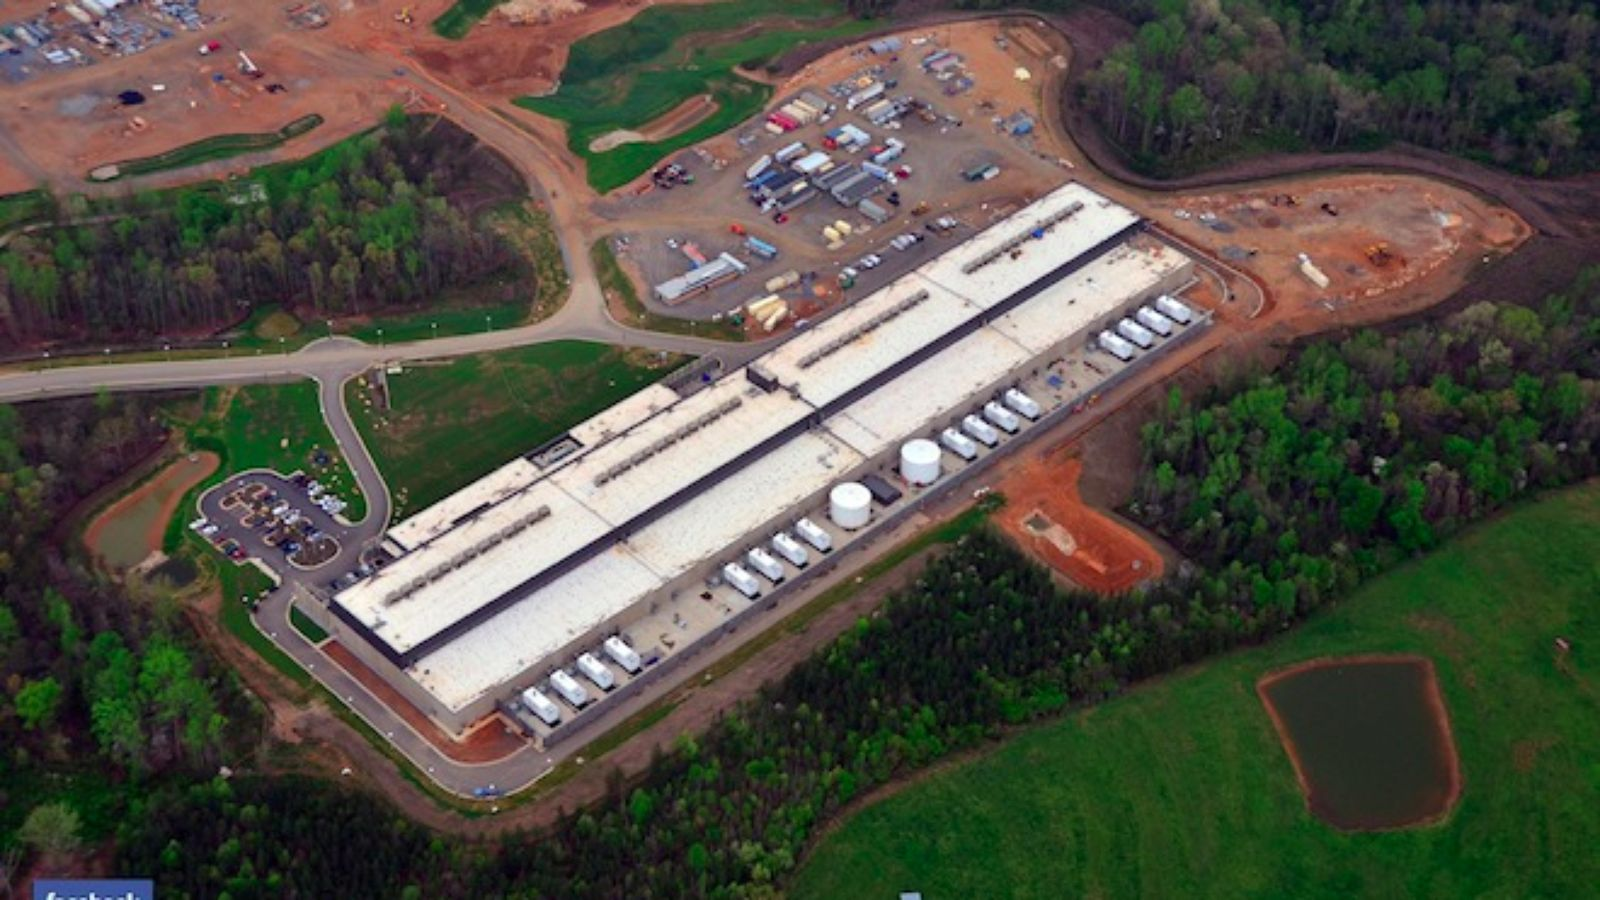 A Facebook data center based in Forest City, NC